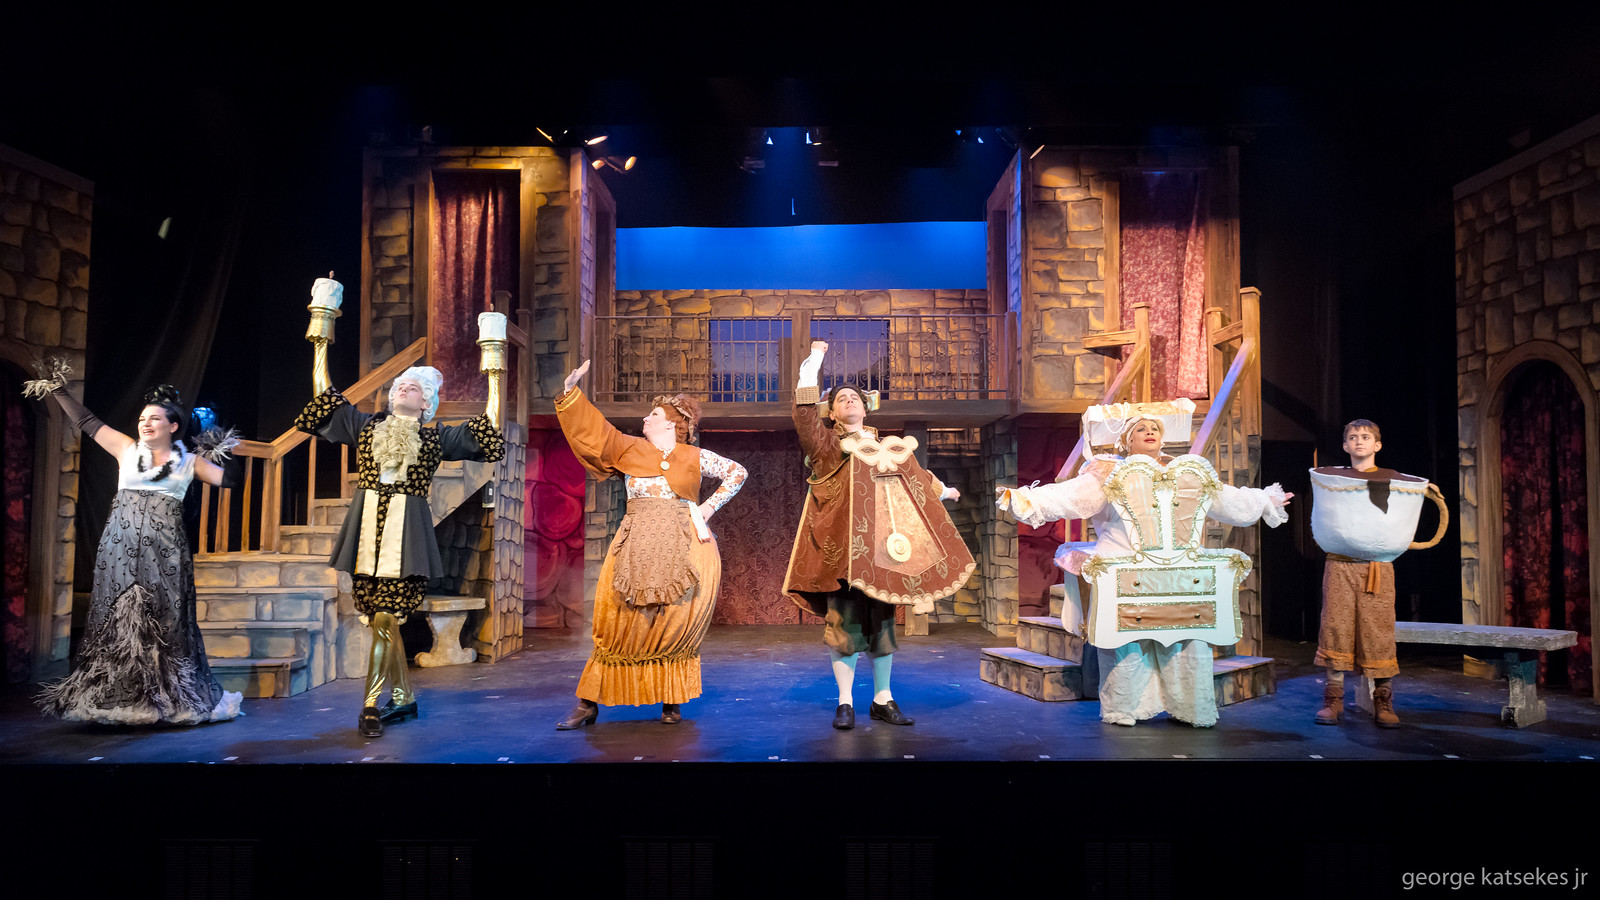 """Babette (Lydia Rose Eiche), Lumiere (Eric Welch), Mrs. Potts (Marcee Doherty-Elst), Cogsworth (Corey Richards), Madame De La Grand Bouche (Sharon Tyler) and Chip (John Batory) sing about how life will be when they shed their objects and become people during the """"Human Again"""" song in a scene from Sunset Playhouse's """"Beauty and the Beast."""""""